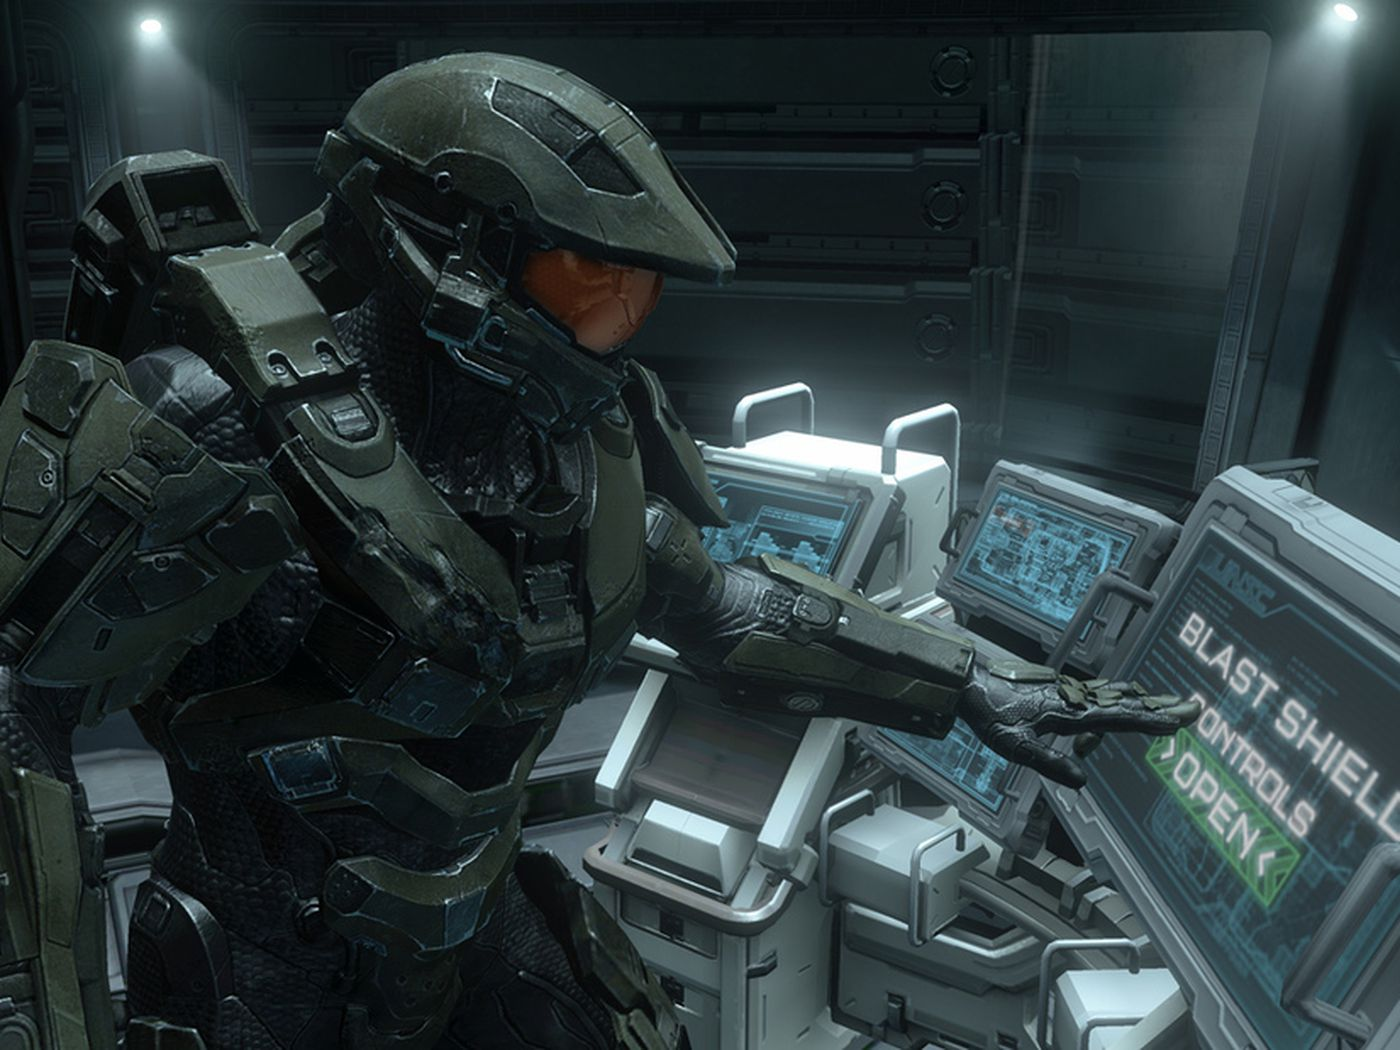 Halo 4 Update Tweaks Playlists Adds Spartan Ops Missions To